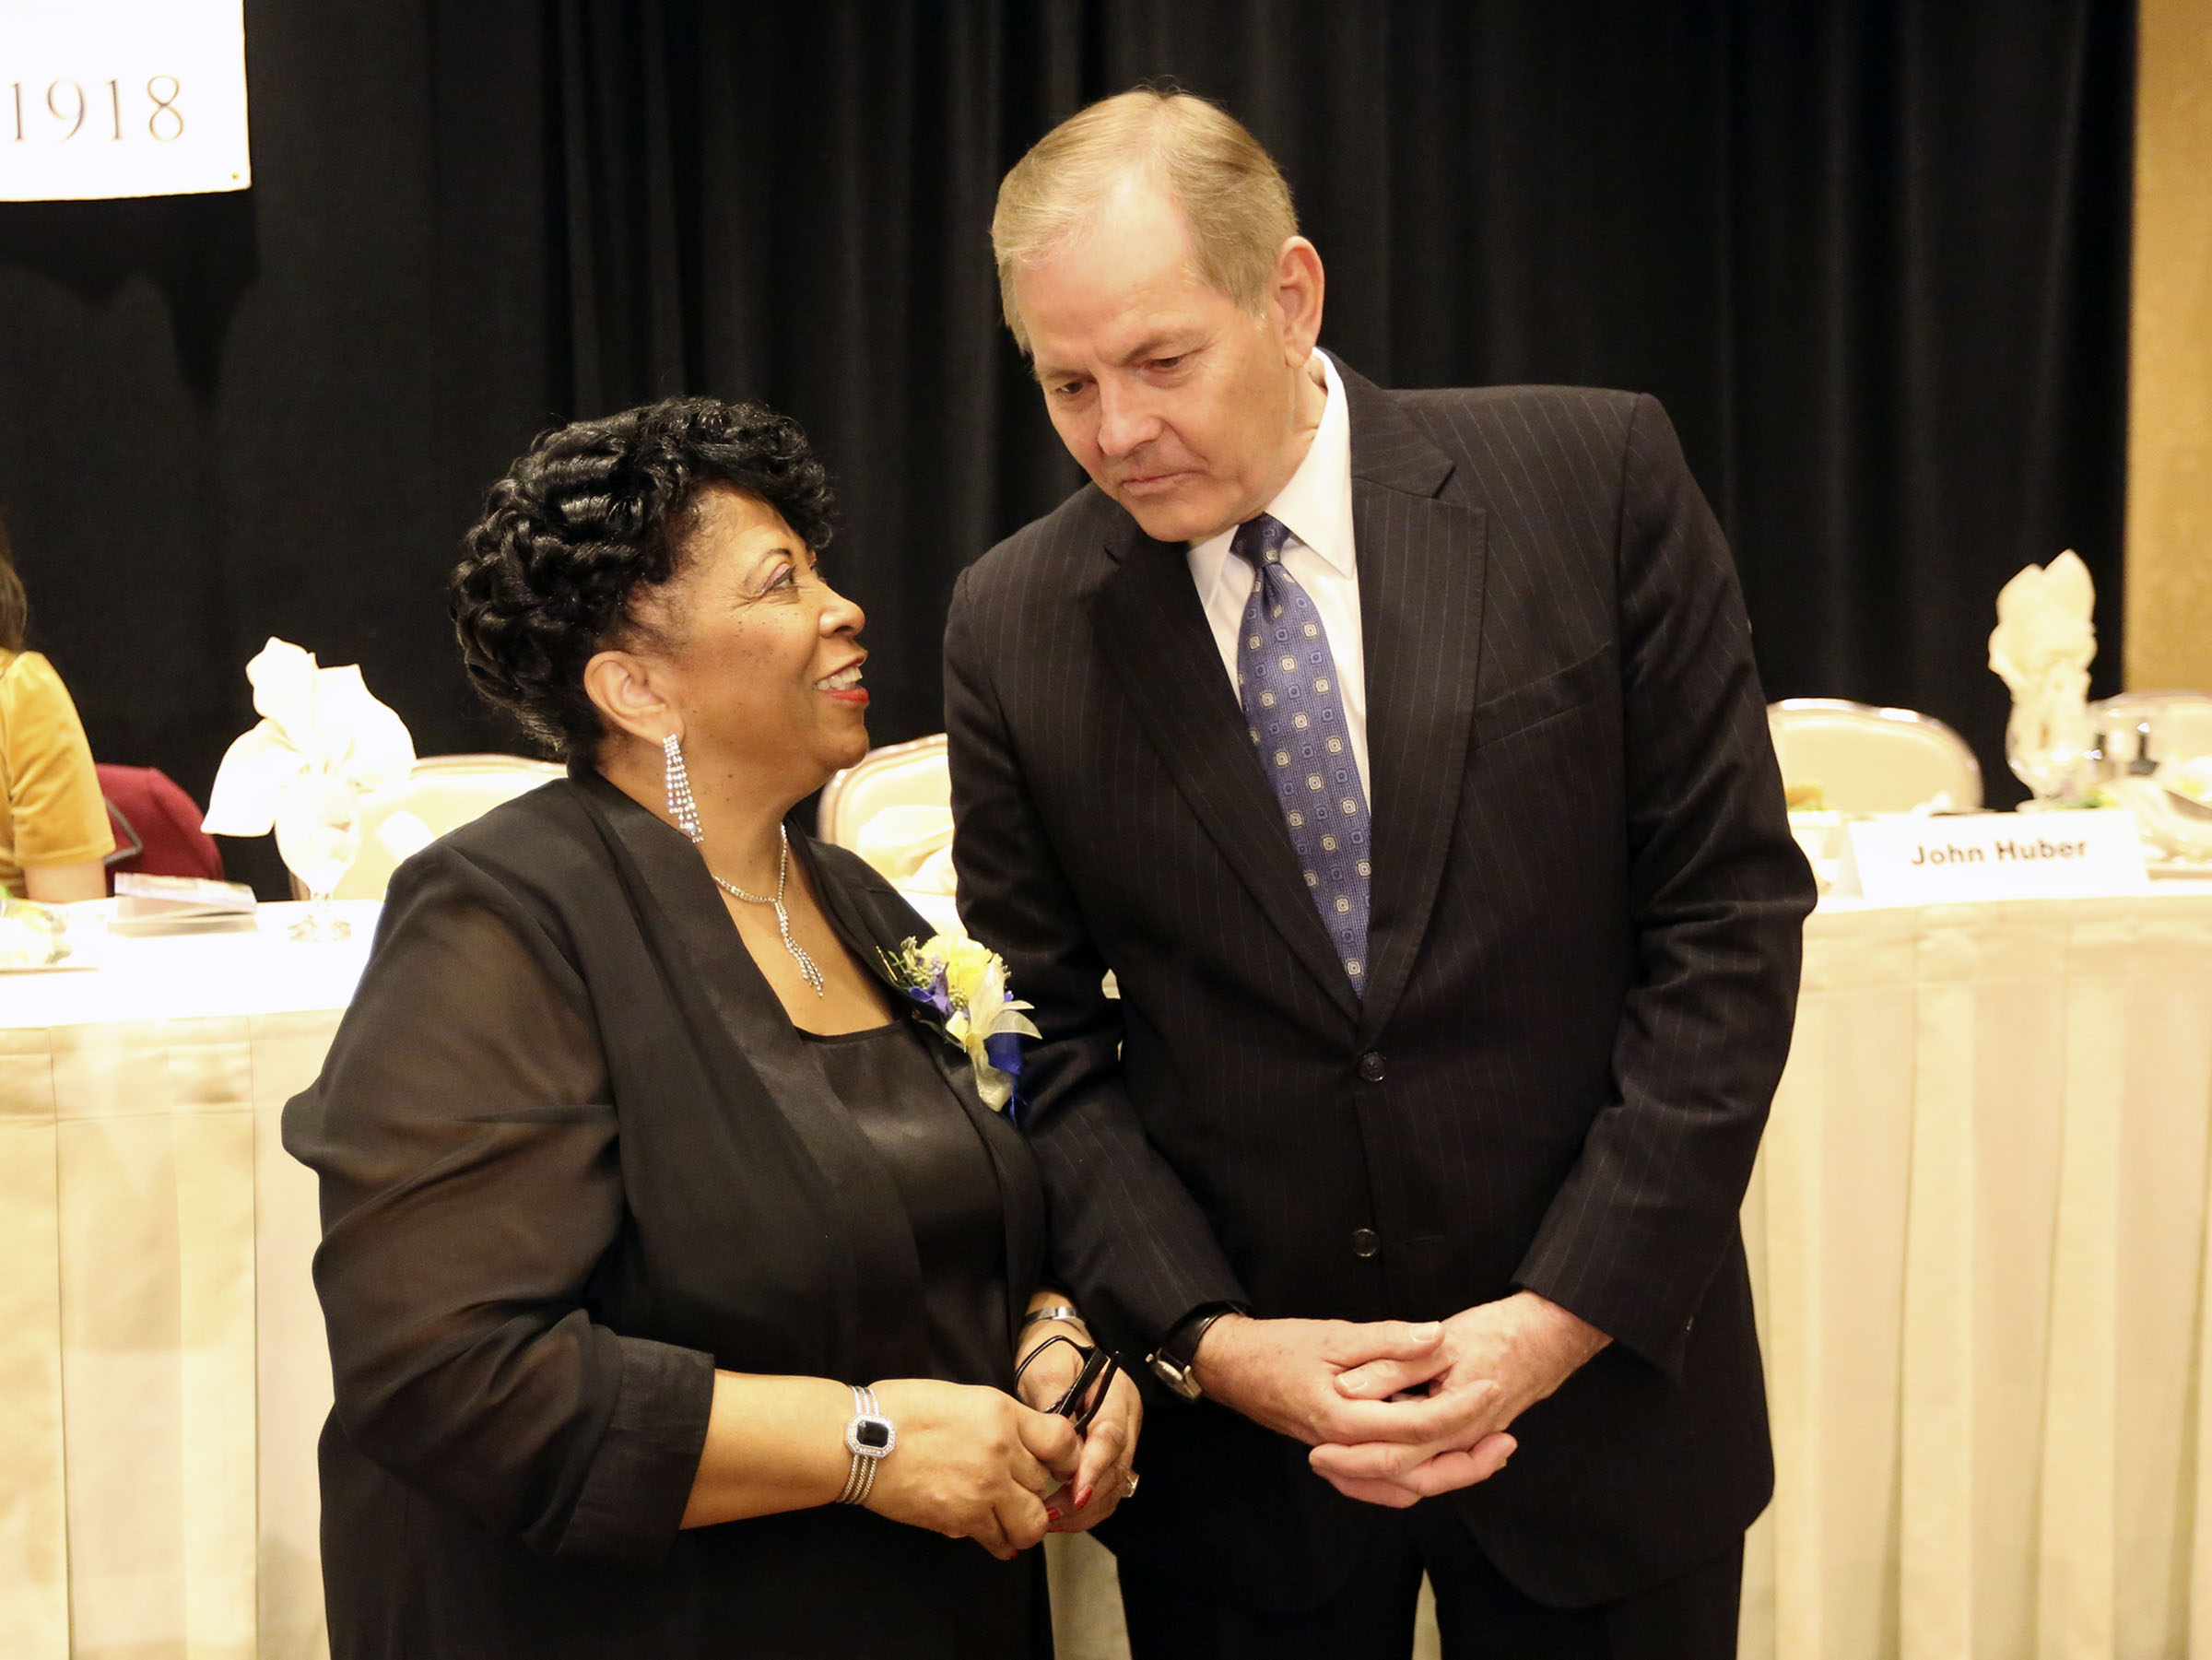 Jeanetta Williams, NAACP Salt Lake Branch president, and Elder Gary E. Stevenson, of the Quorum of the Twelve Apostles of The Church of Jesus Christ of Latter-day Saints, chat during the 36th annual Dr. Martin Luther King Jr. Memorial Luncheon, hosted by the NAACP Salt Lake Branch, at the Little America Hotel in Salt Lake City on Monday, Jan. 20, 2020.